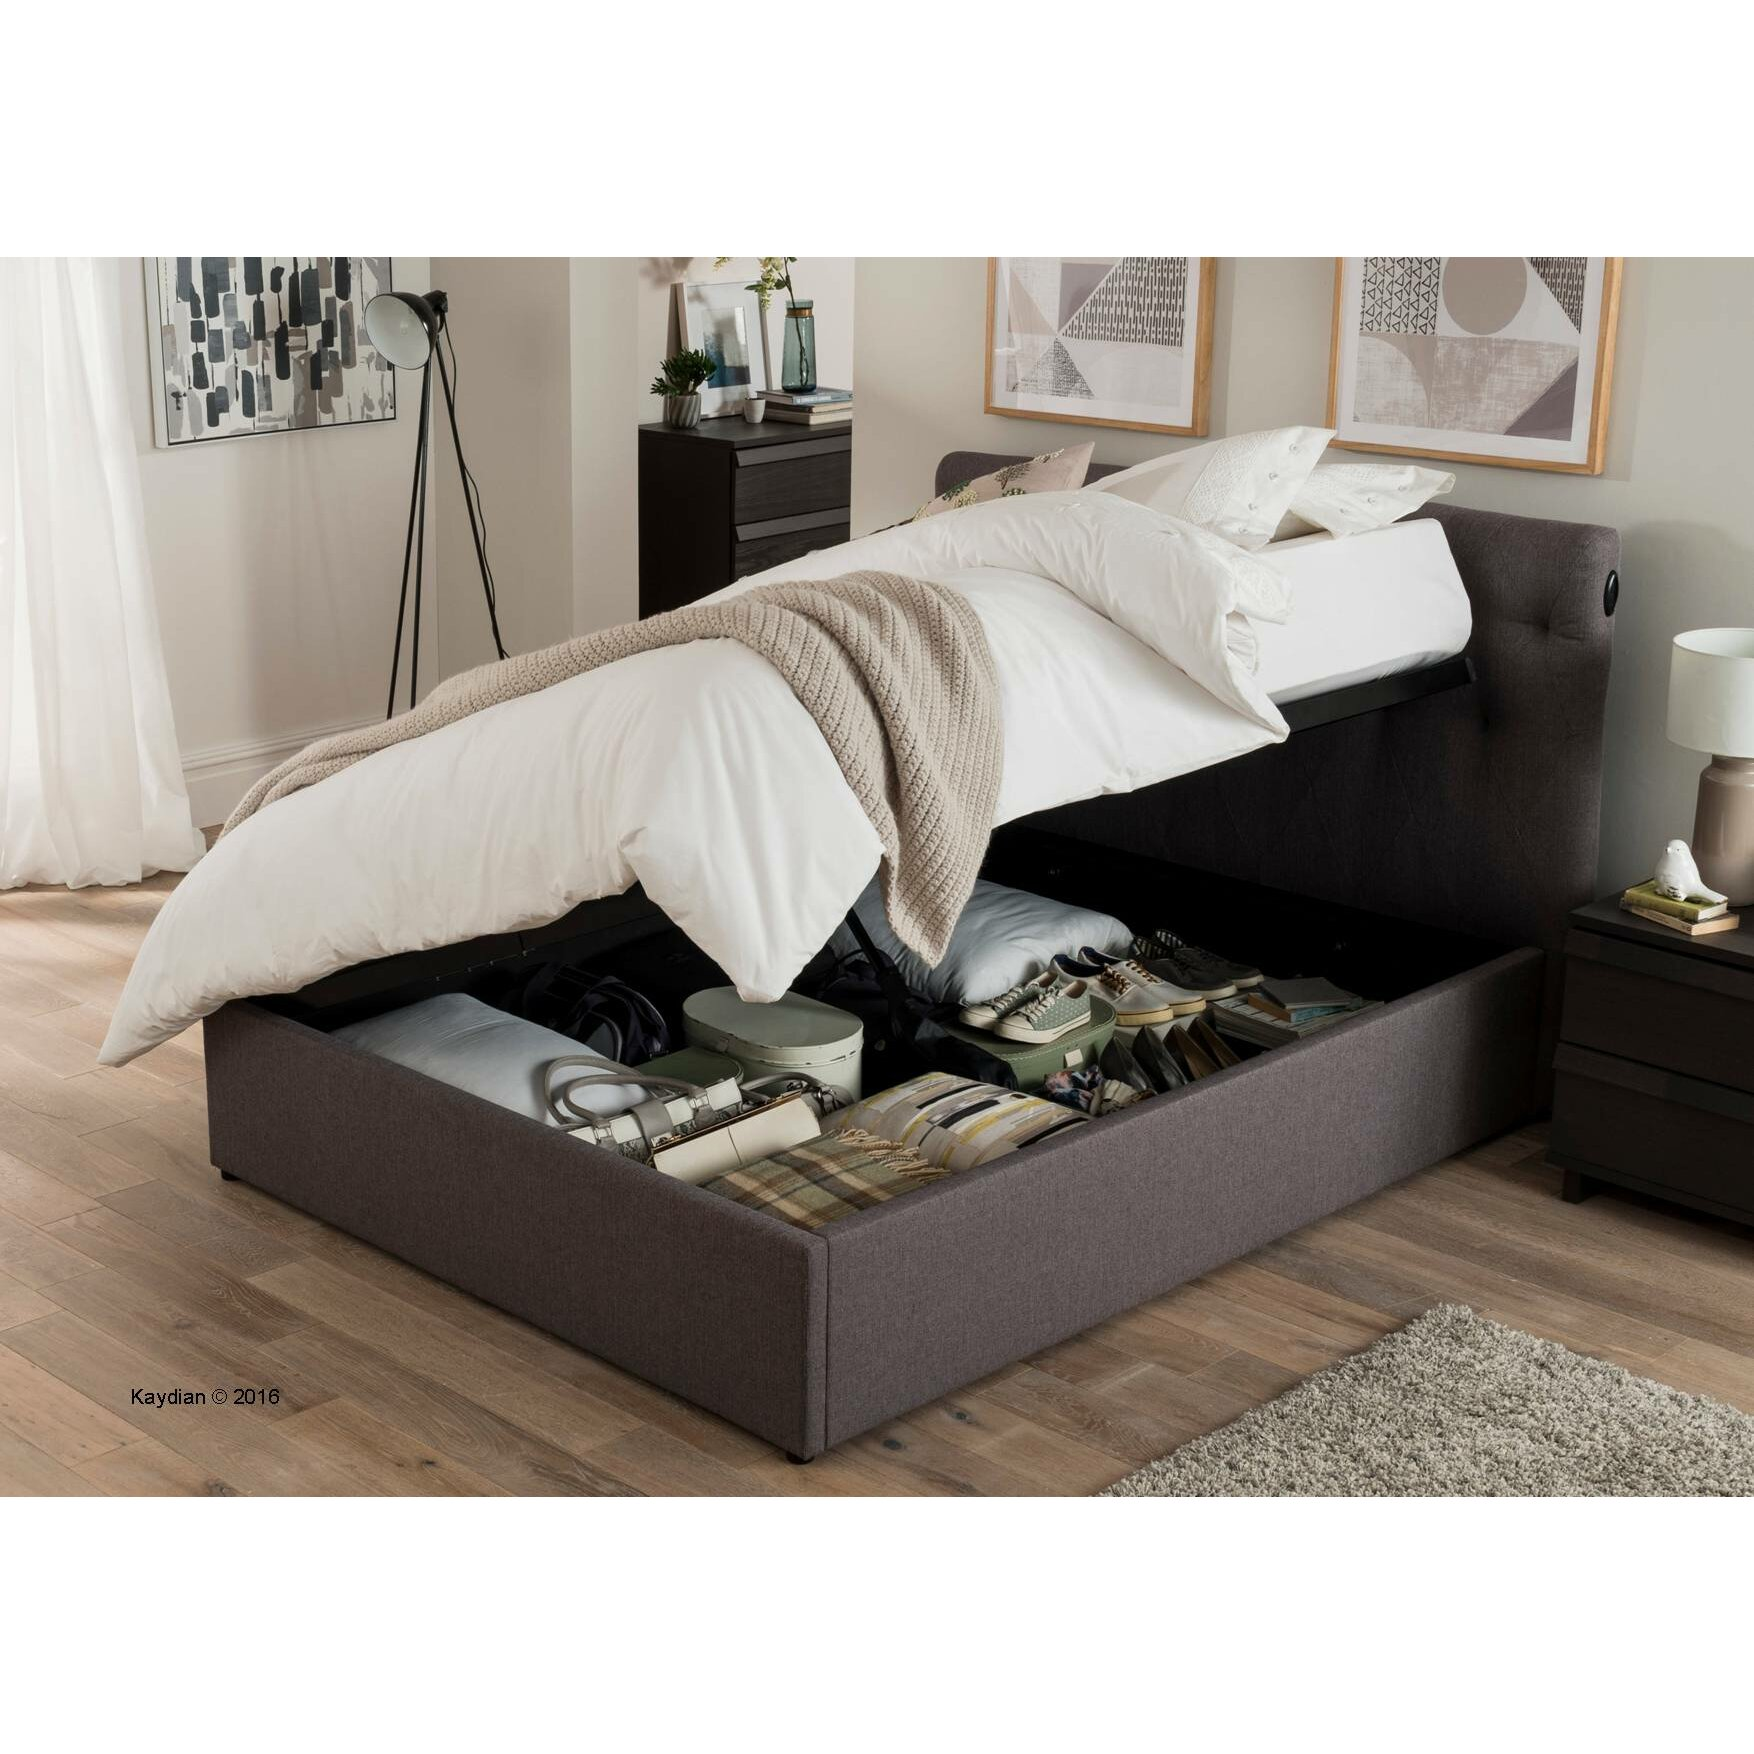 Home loft concept canamero upholstered ottoman bed for Home loft concept bunk bed